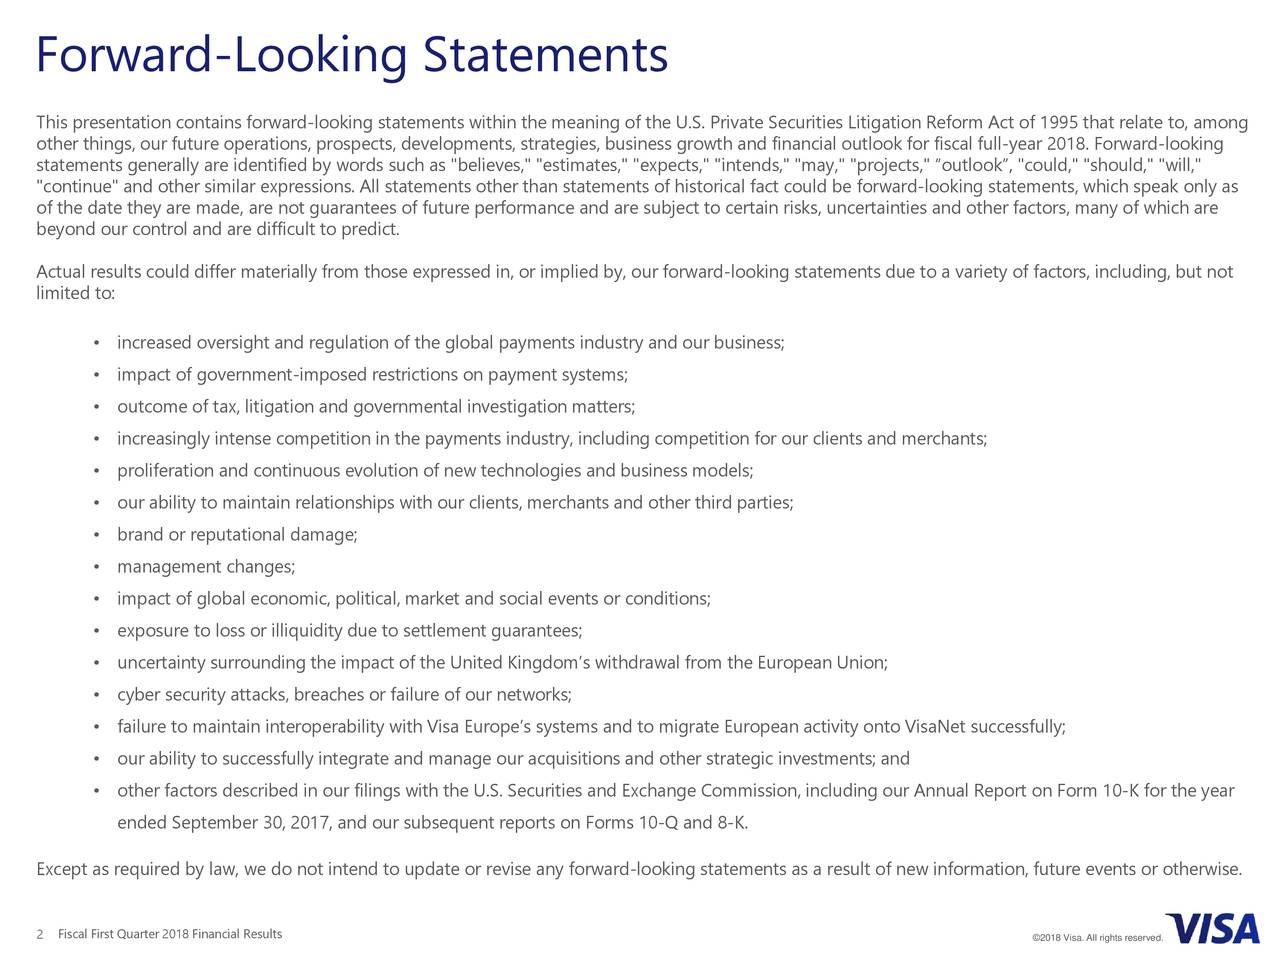 """This presentation contains forward-looking statements within the meaning of the U.S. Private Securities Litigation Reform Act of 1995 that relate to, among other things, our future operations, prospects, developments, strategies, business growth and financial outlook for fiscal full-year 2018. Forward-looking statements generally are identified by words such as """"believes,"""" """"estimates,"""" """"expects,"""" """"intends,"""" """"may,"""" """"projects,"""" """"ook"""", """"could,"""" """"should,"""" """"will,"""" """"continue"""" and other similar expressions. All statements other than statements of historical fact could be forward-looking statements, which speak only as of the date they are made, are not guarantees of future performance and are subject to certain risks, uncertainties and other factors, many of which are beyond our control and are difficult to predict. Actual results could differ materially from those expressed in, or implied by, our forward-looking statements due to a variety of factors, including, but not limited to: • increased oversight and regulation of the global payments industry and our business; • impact of government-imposed restrictions on payment systems; • outcome of tax, litigation and governmental investigationmatters; • increasingly intense competition in the payments industry, including competition for our clients and merchants; • proliferation and continuous evolution of new technologies and business models; • our ability to maintain relationships with our clients, merchants and other third parties; • brand or reputational damage; • management changes; • impact of global economic, political, market and social events or conditions; • exposure to loss or illiquidity due to settlement guarantees; • uncertainty surrounding the impact of the United Kingdom's withdrawal from the European Union; • cyber security attacks, breaches or failure of our networks; • failure to maintain interoperability with Visa Europe's systems and to migrate European activity onto VisaNet successfully; • our ability to """